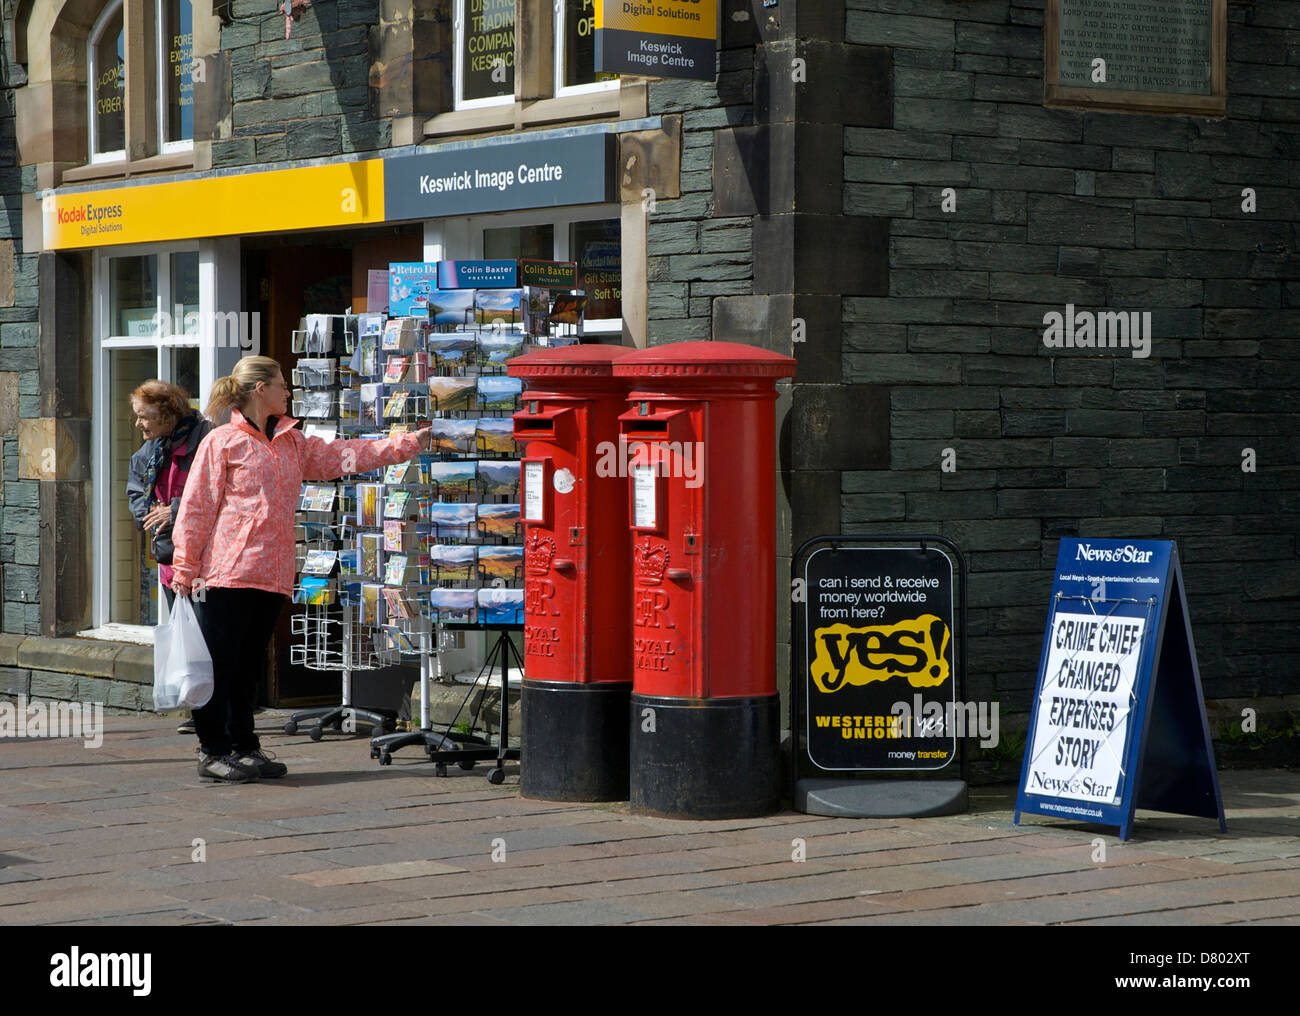 Woman browsing through postcards outside the post office, Keswick, Lake District National Park, Cumbria, England - Stock Image